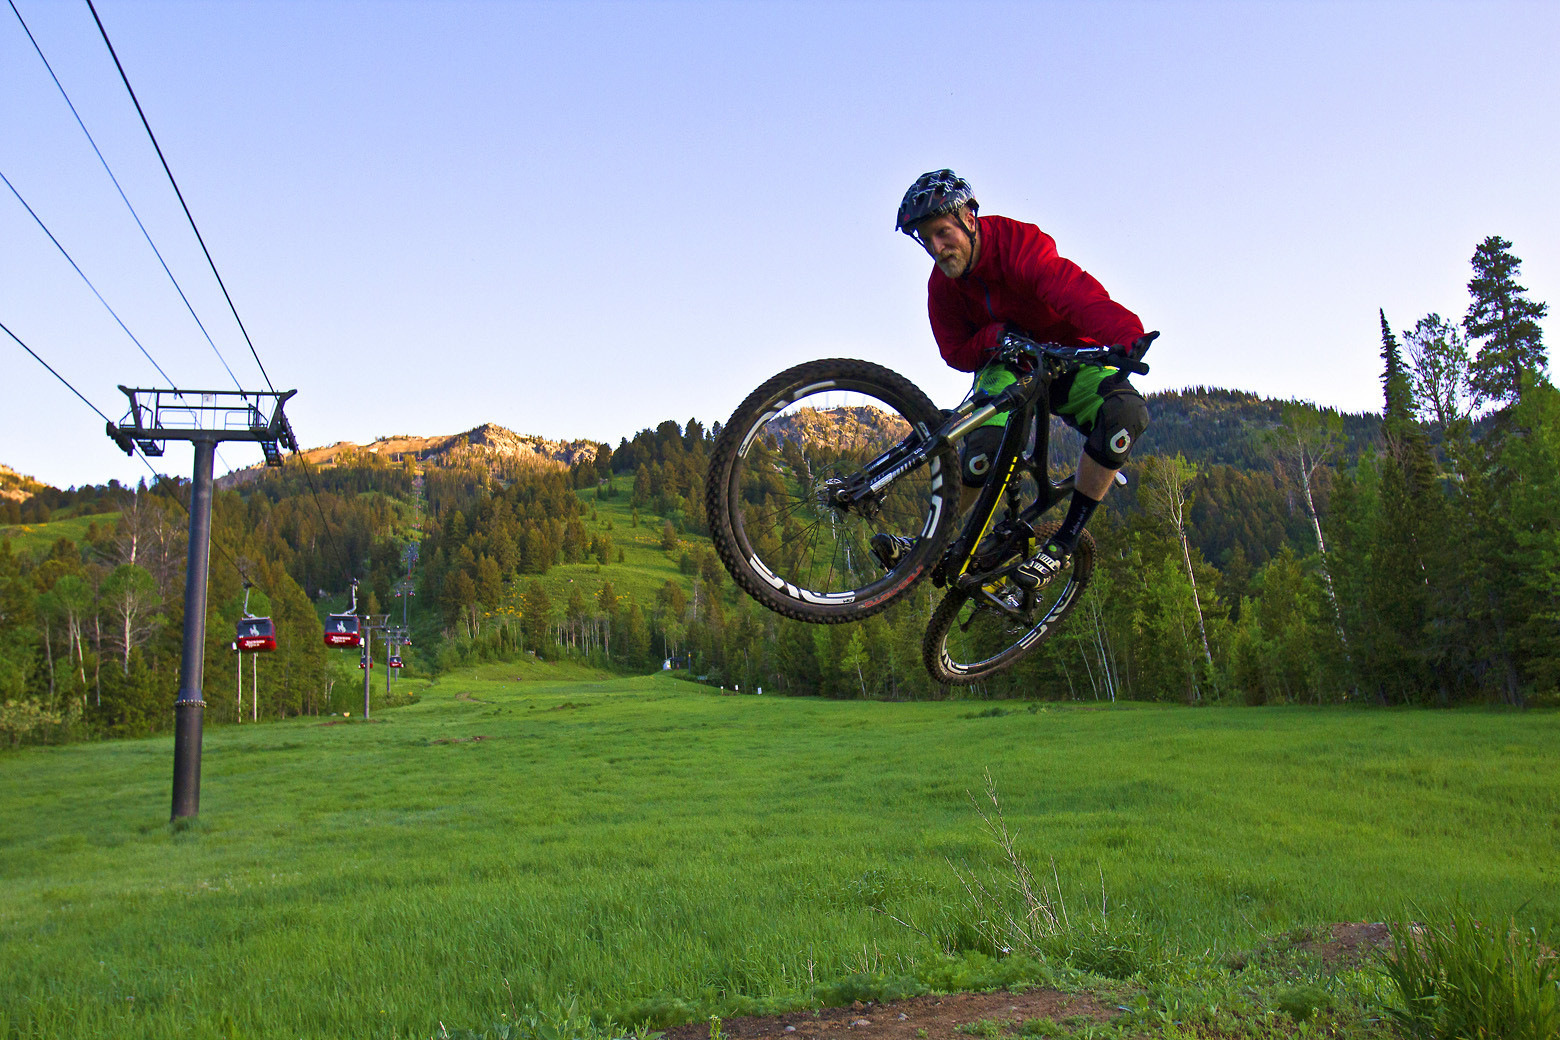 Andrew Whiteford enjoying the smooth flow on Bandit - jacksonholemountainresort - Mountain Biking Pictures - Vital MTB